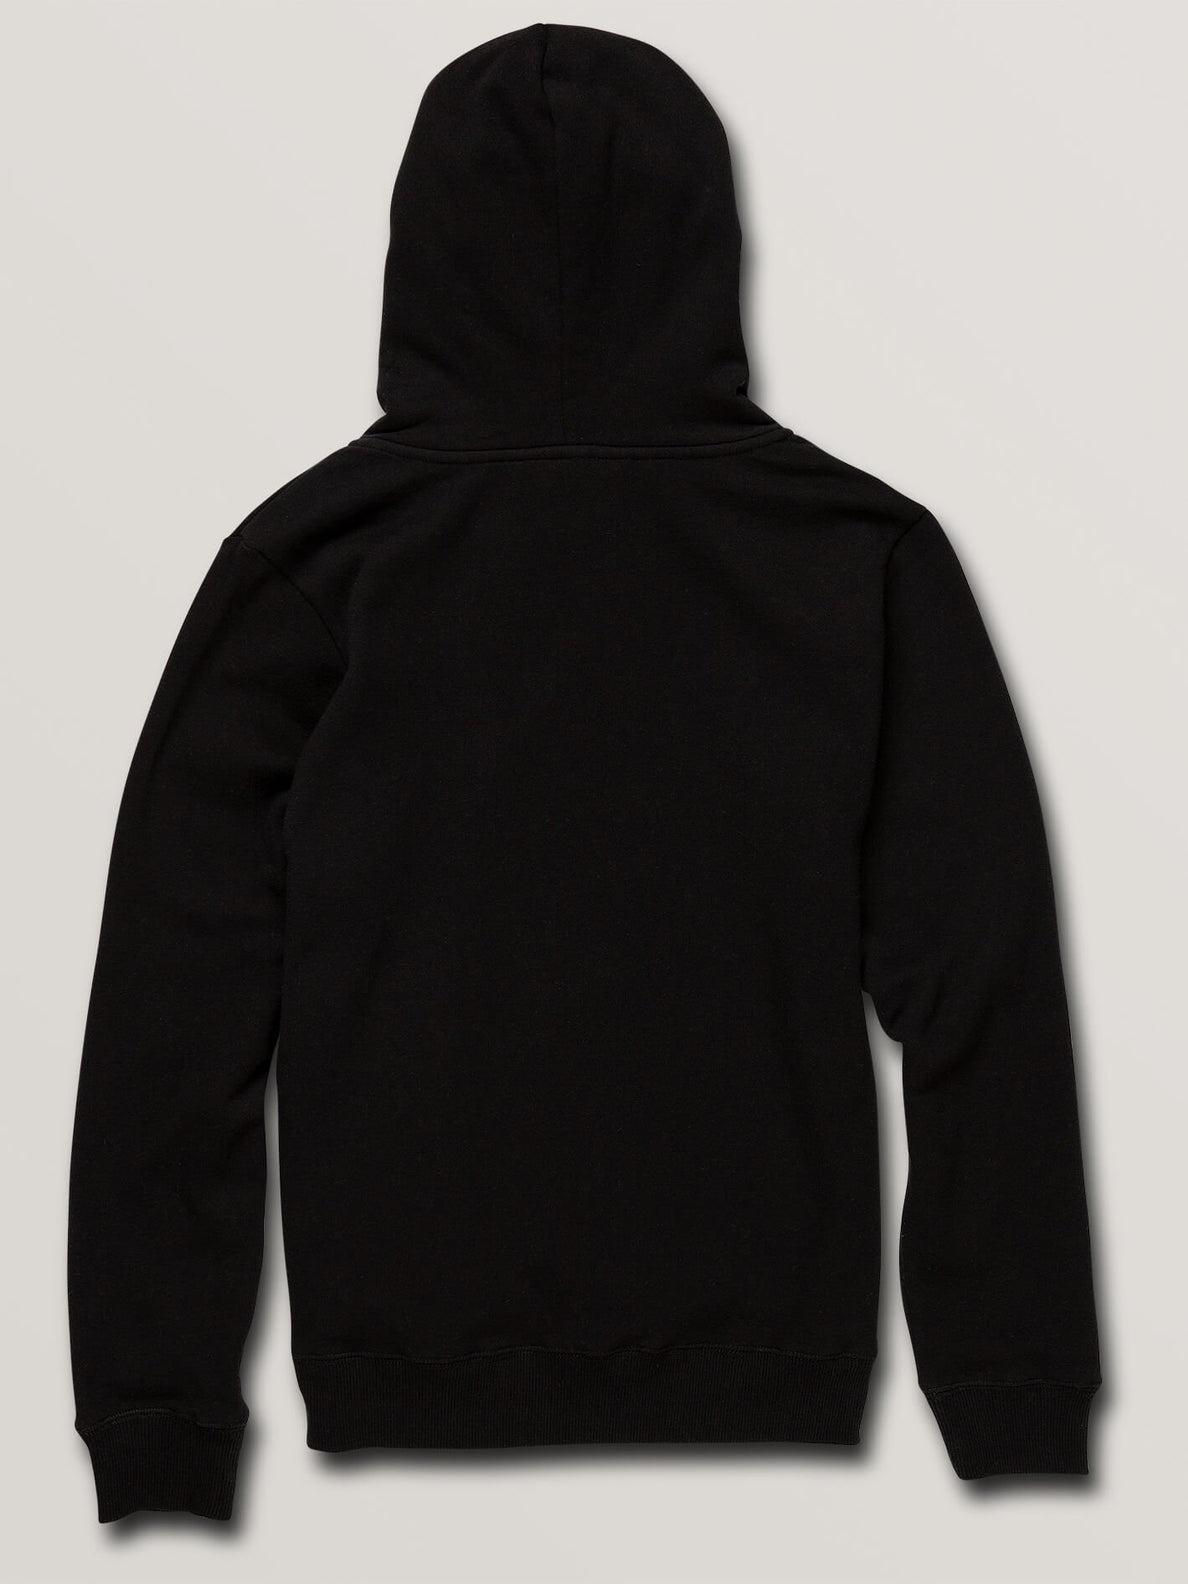 Deadly Stone Pullover - Black (Kinder)